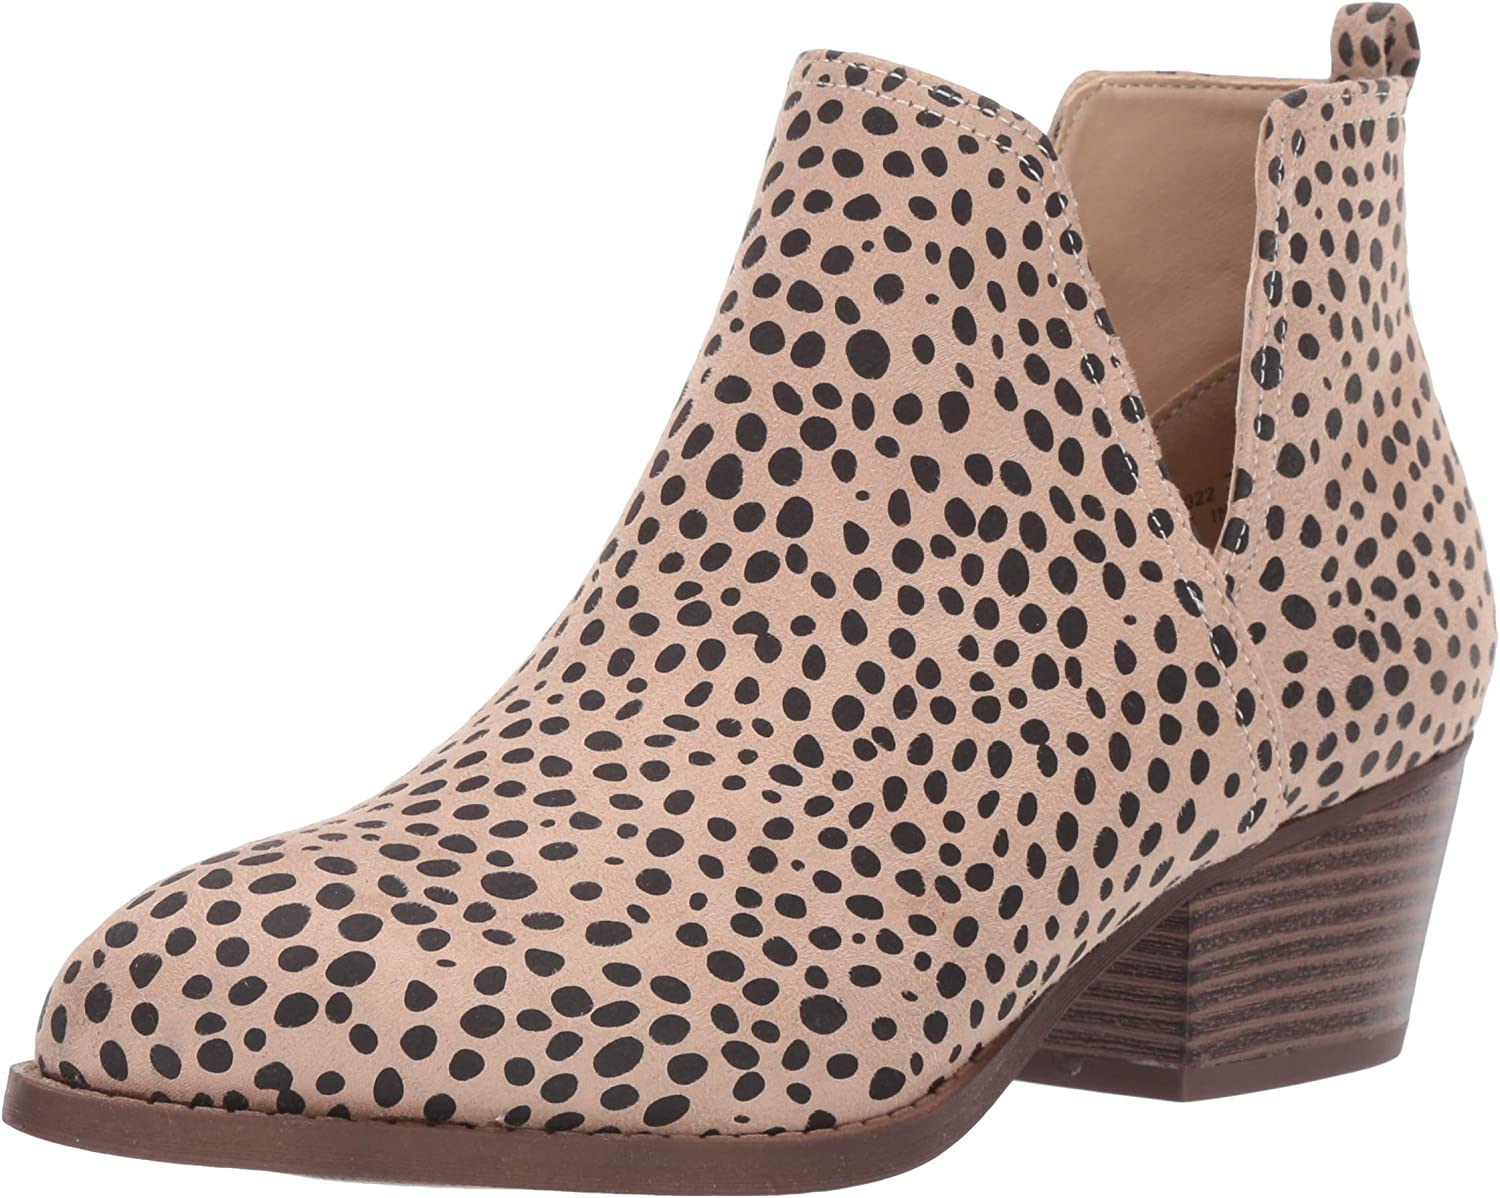 CL by Chinese Laundry Women's Caring Chelsea Boot